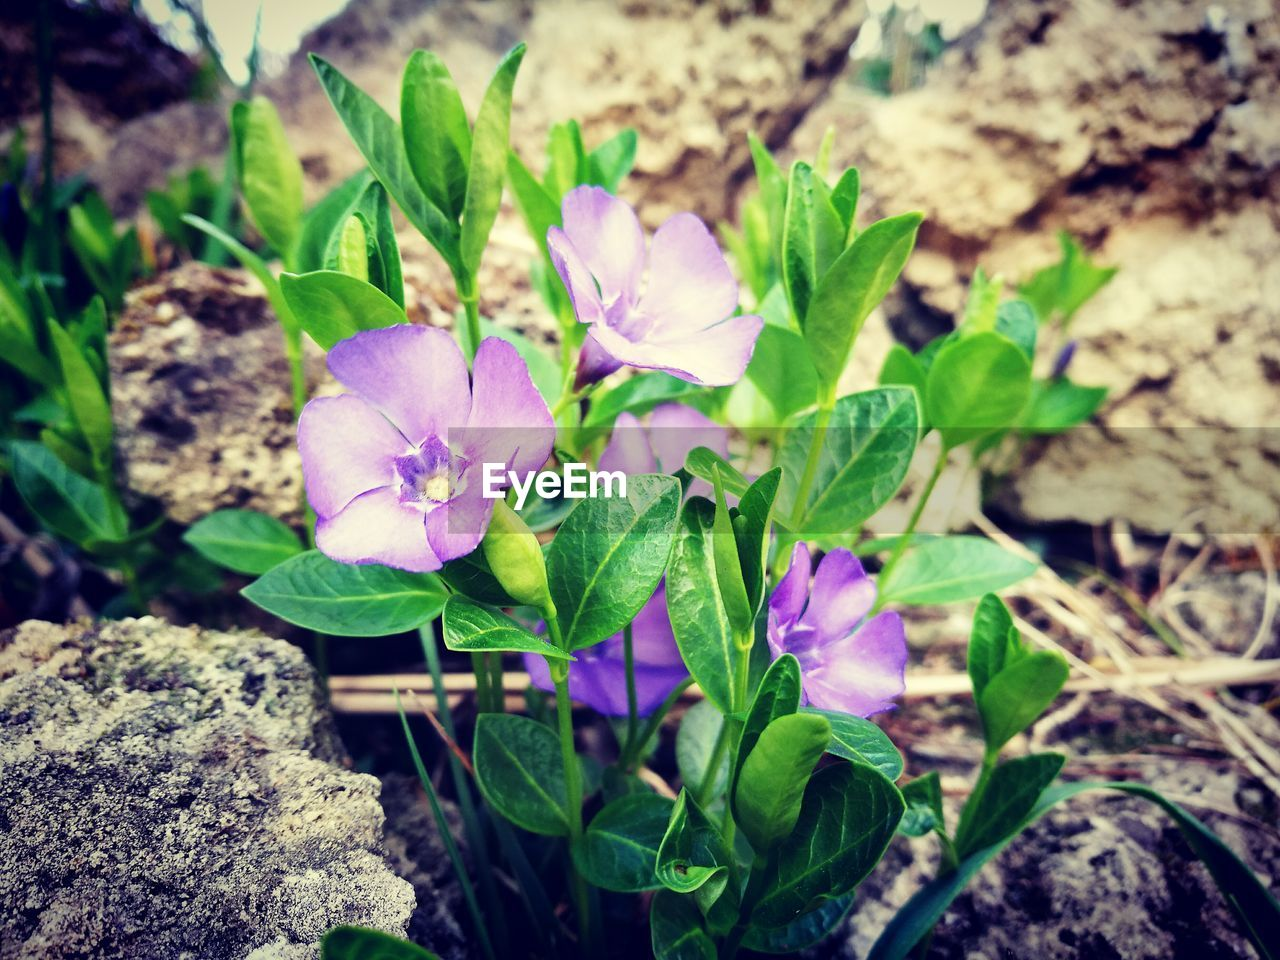 flower, beauty in nature, nature, growth, plant, fragility, freshness, petal, leaf, flower head, outdoors, green color, day, no people, high angle view, purple, field, blooming, close-up, periwinkle, crocus